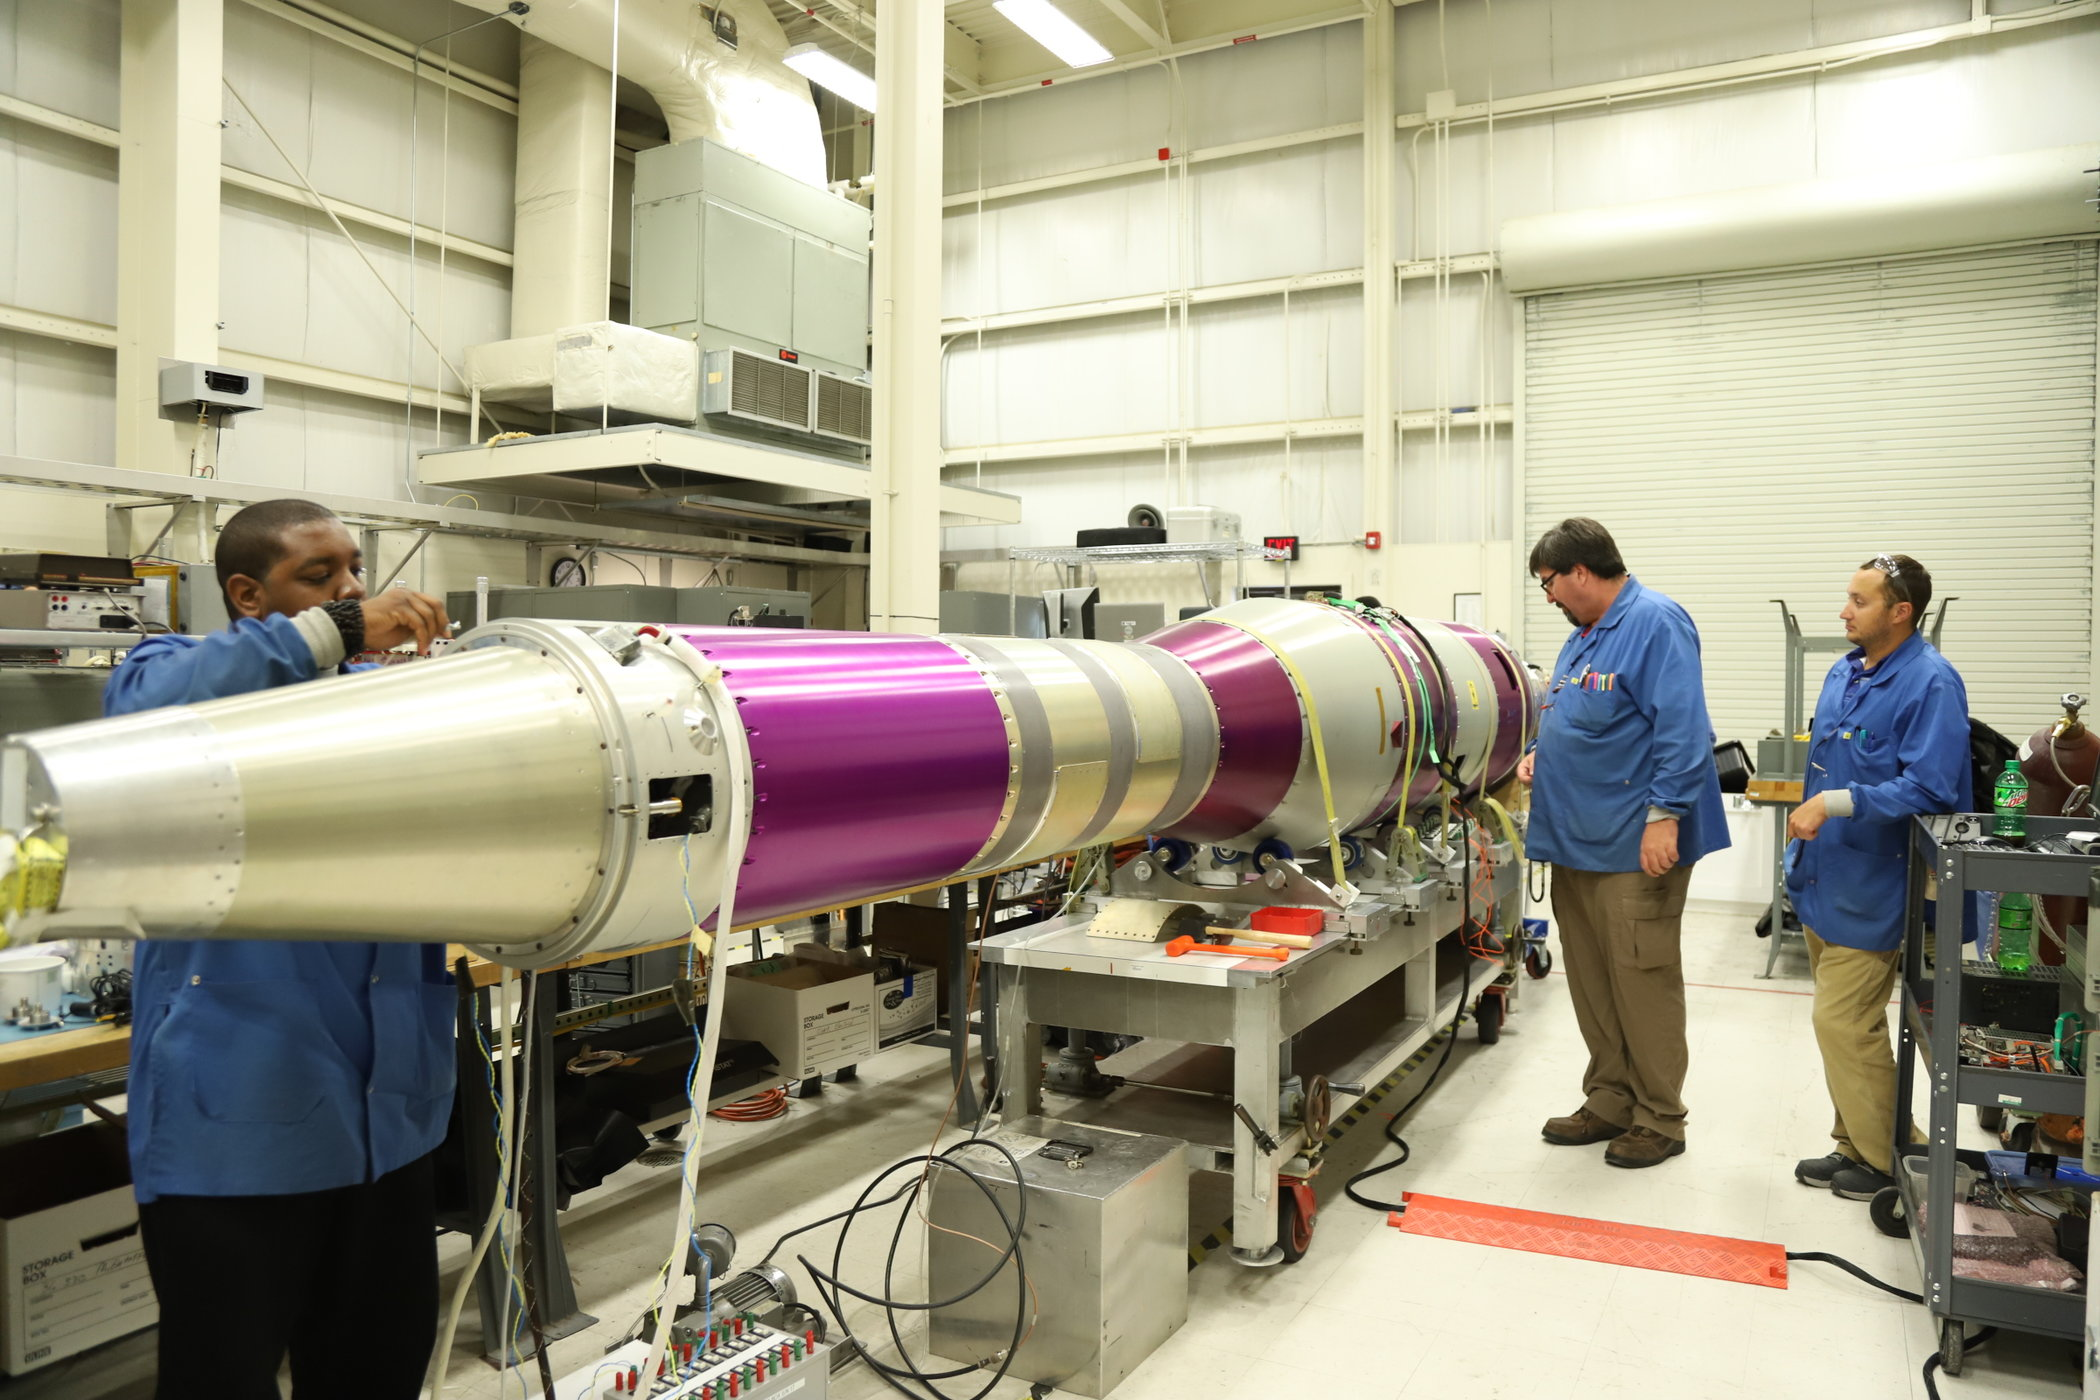 NASA Will Launch 2 Rockets to Test a Mars Parachute and Track Nanoflares